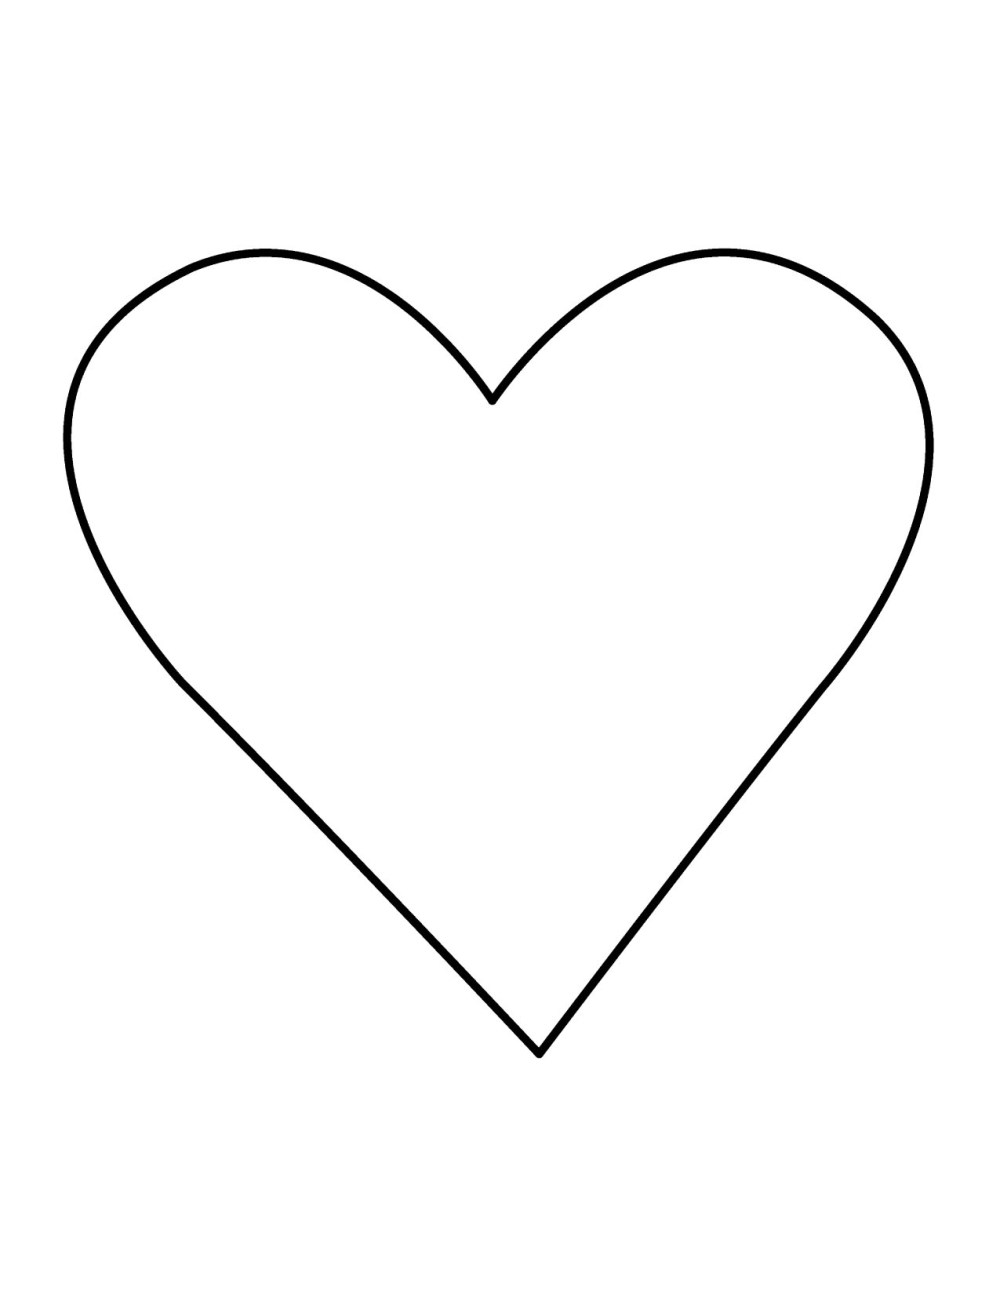 medium resolution of heart black and white hearts heart clipart black and white 3 clipartix